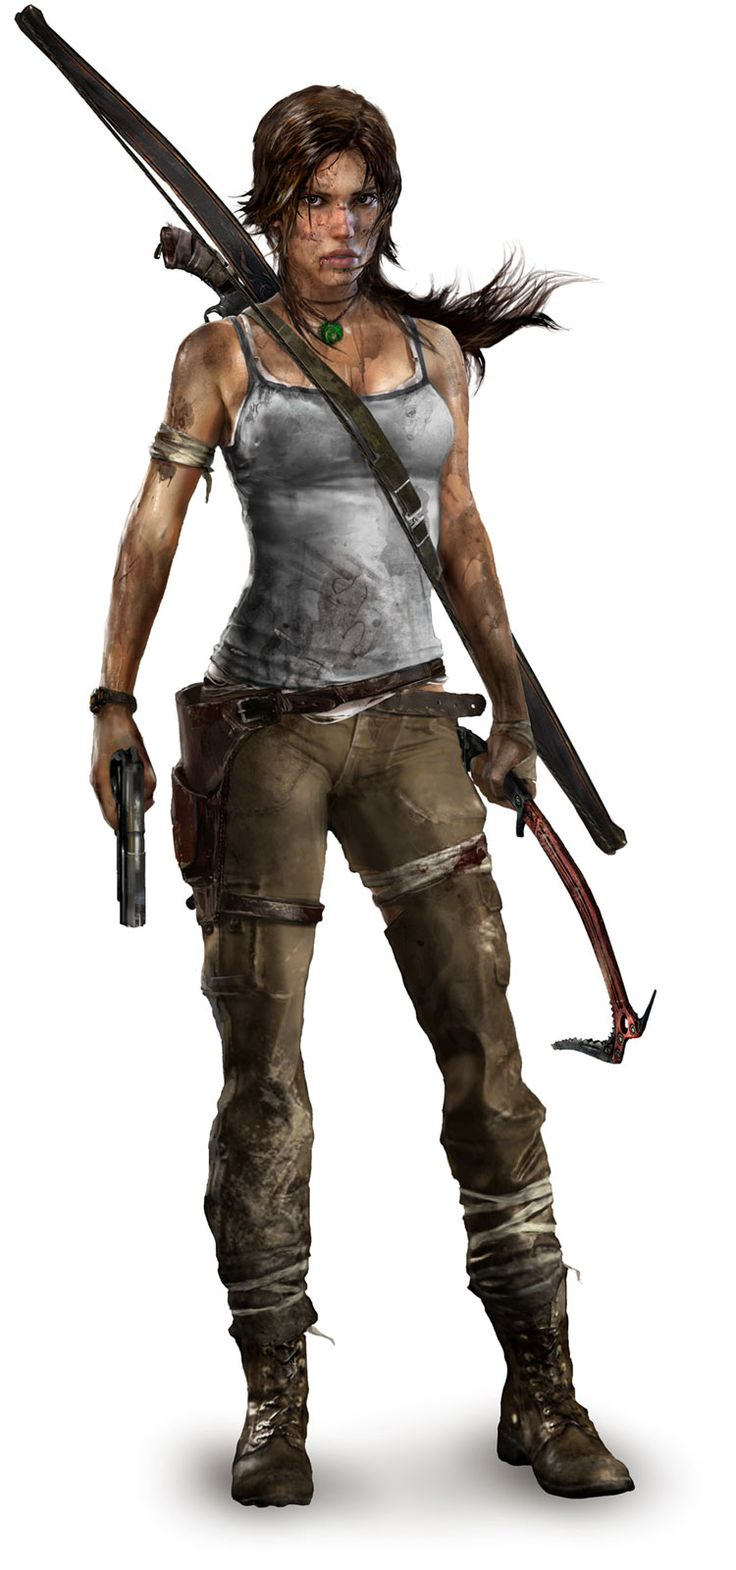 New Tomb Raider look. Personally I like it. She actually looks like she can kick ass!